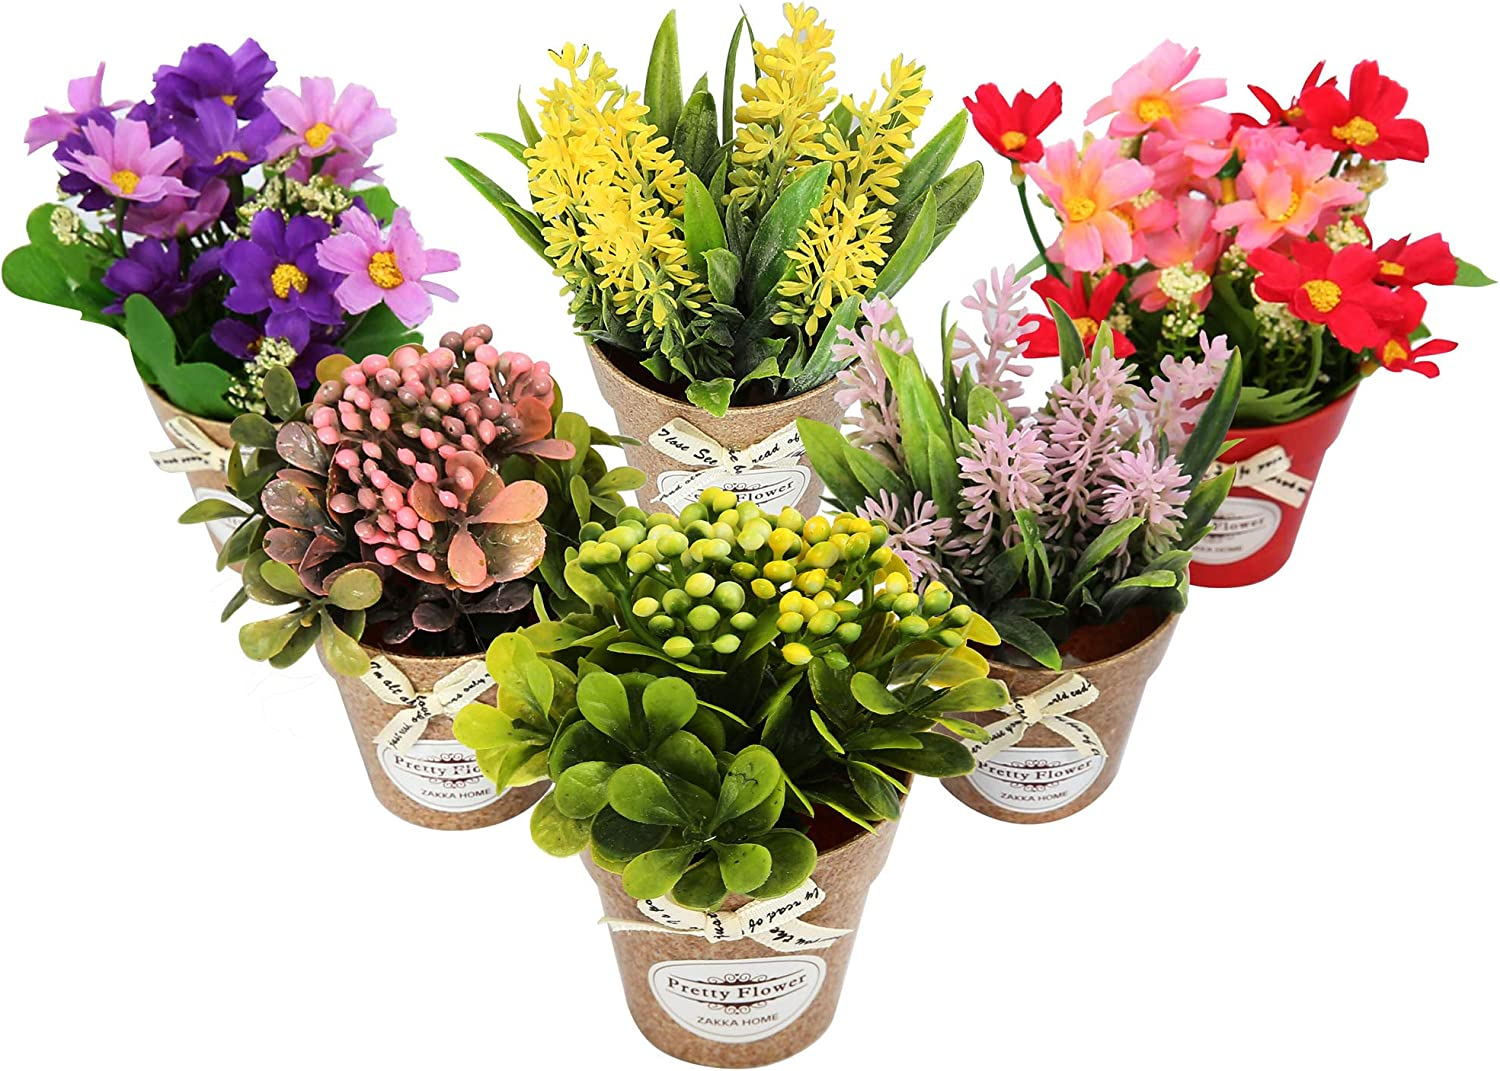 Artificial Flower Fake Plastic Potted Lifelike Plant Ornament Home Office Decors